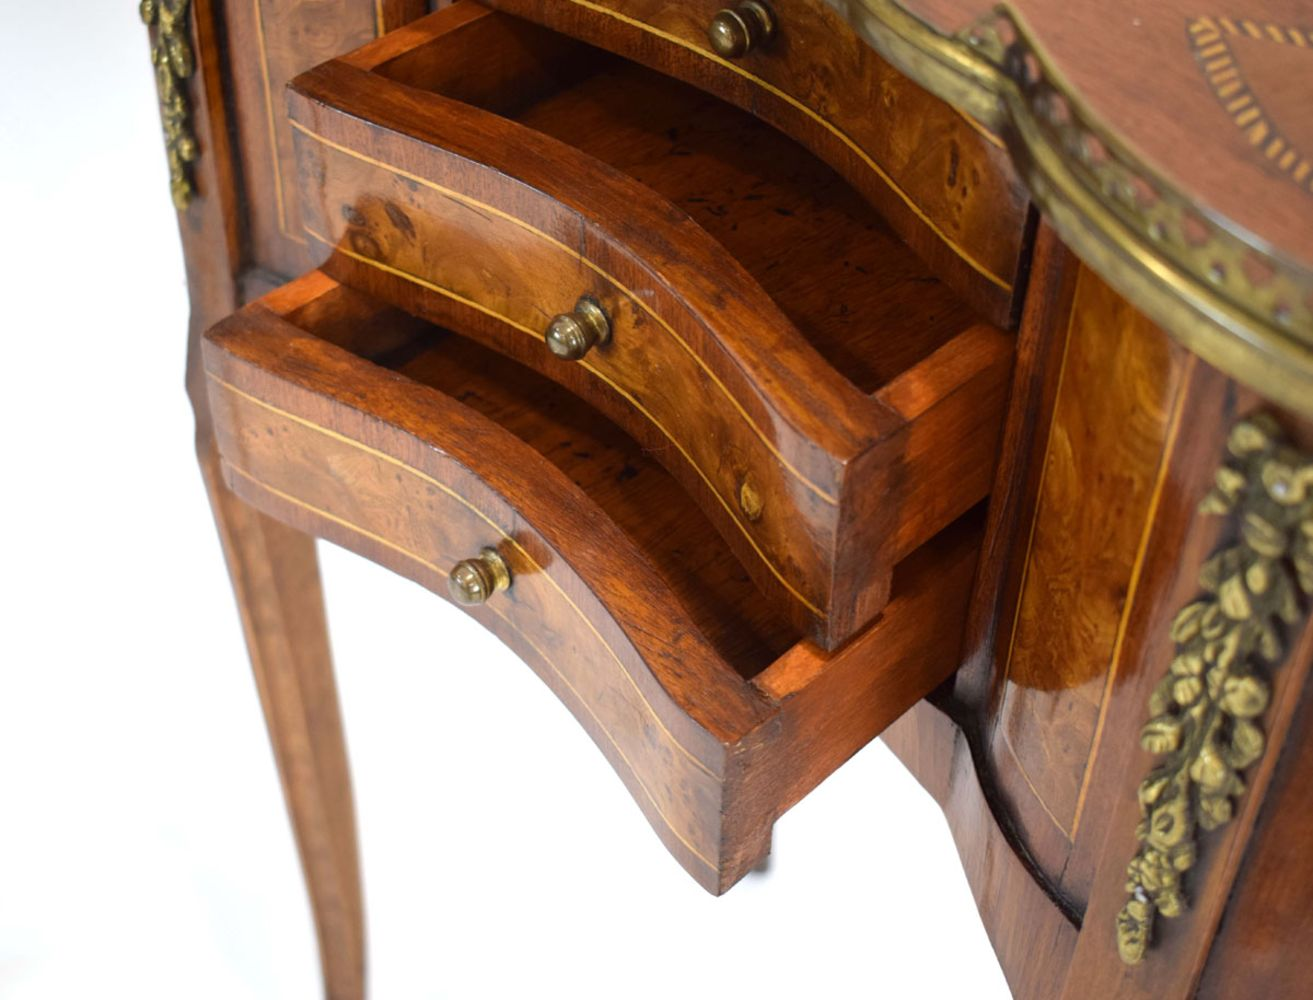 Antique Furniture, Works of Art, Paintings, Silver, Ceramics, Glass, Collectors' Items, Collectable Toys and Jewellery